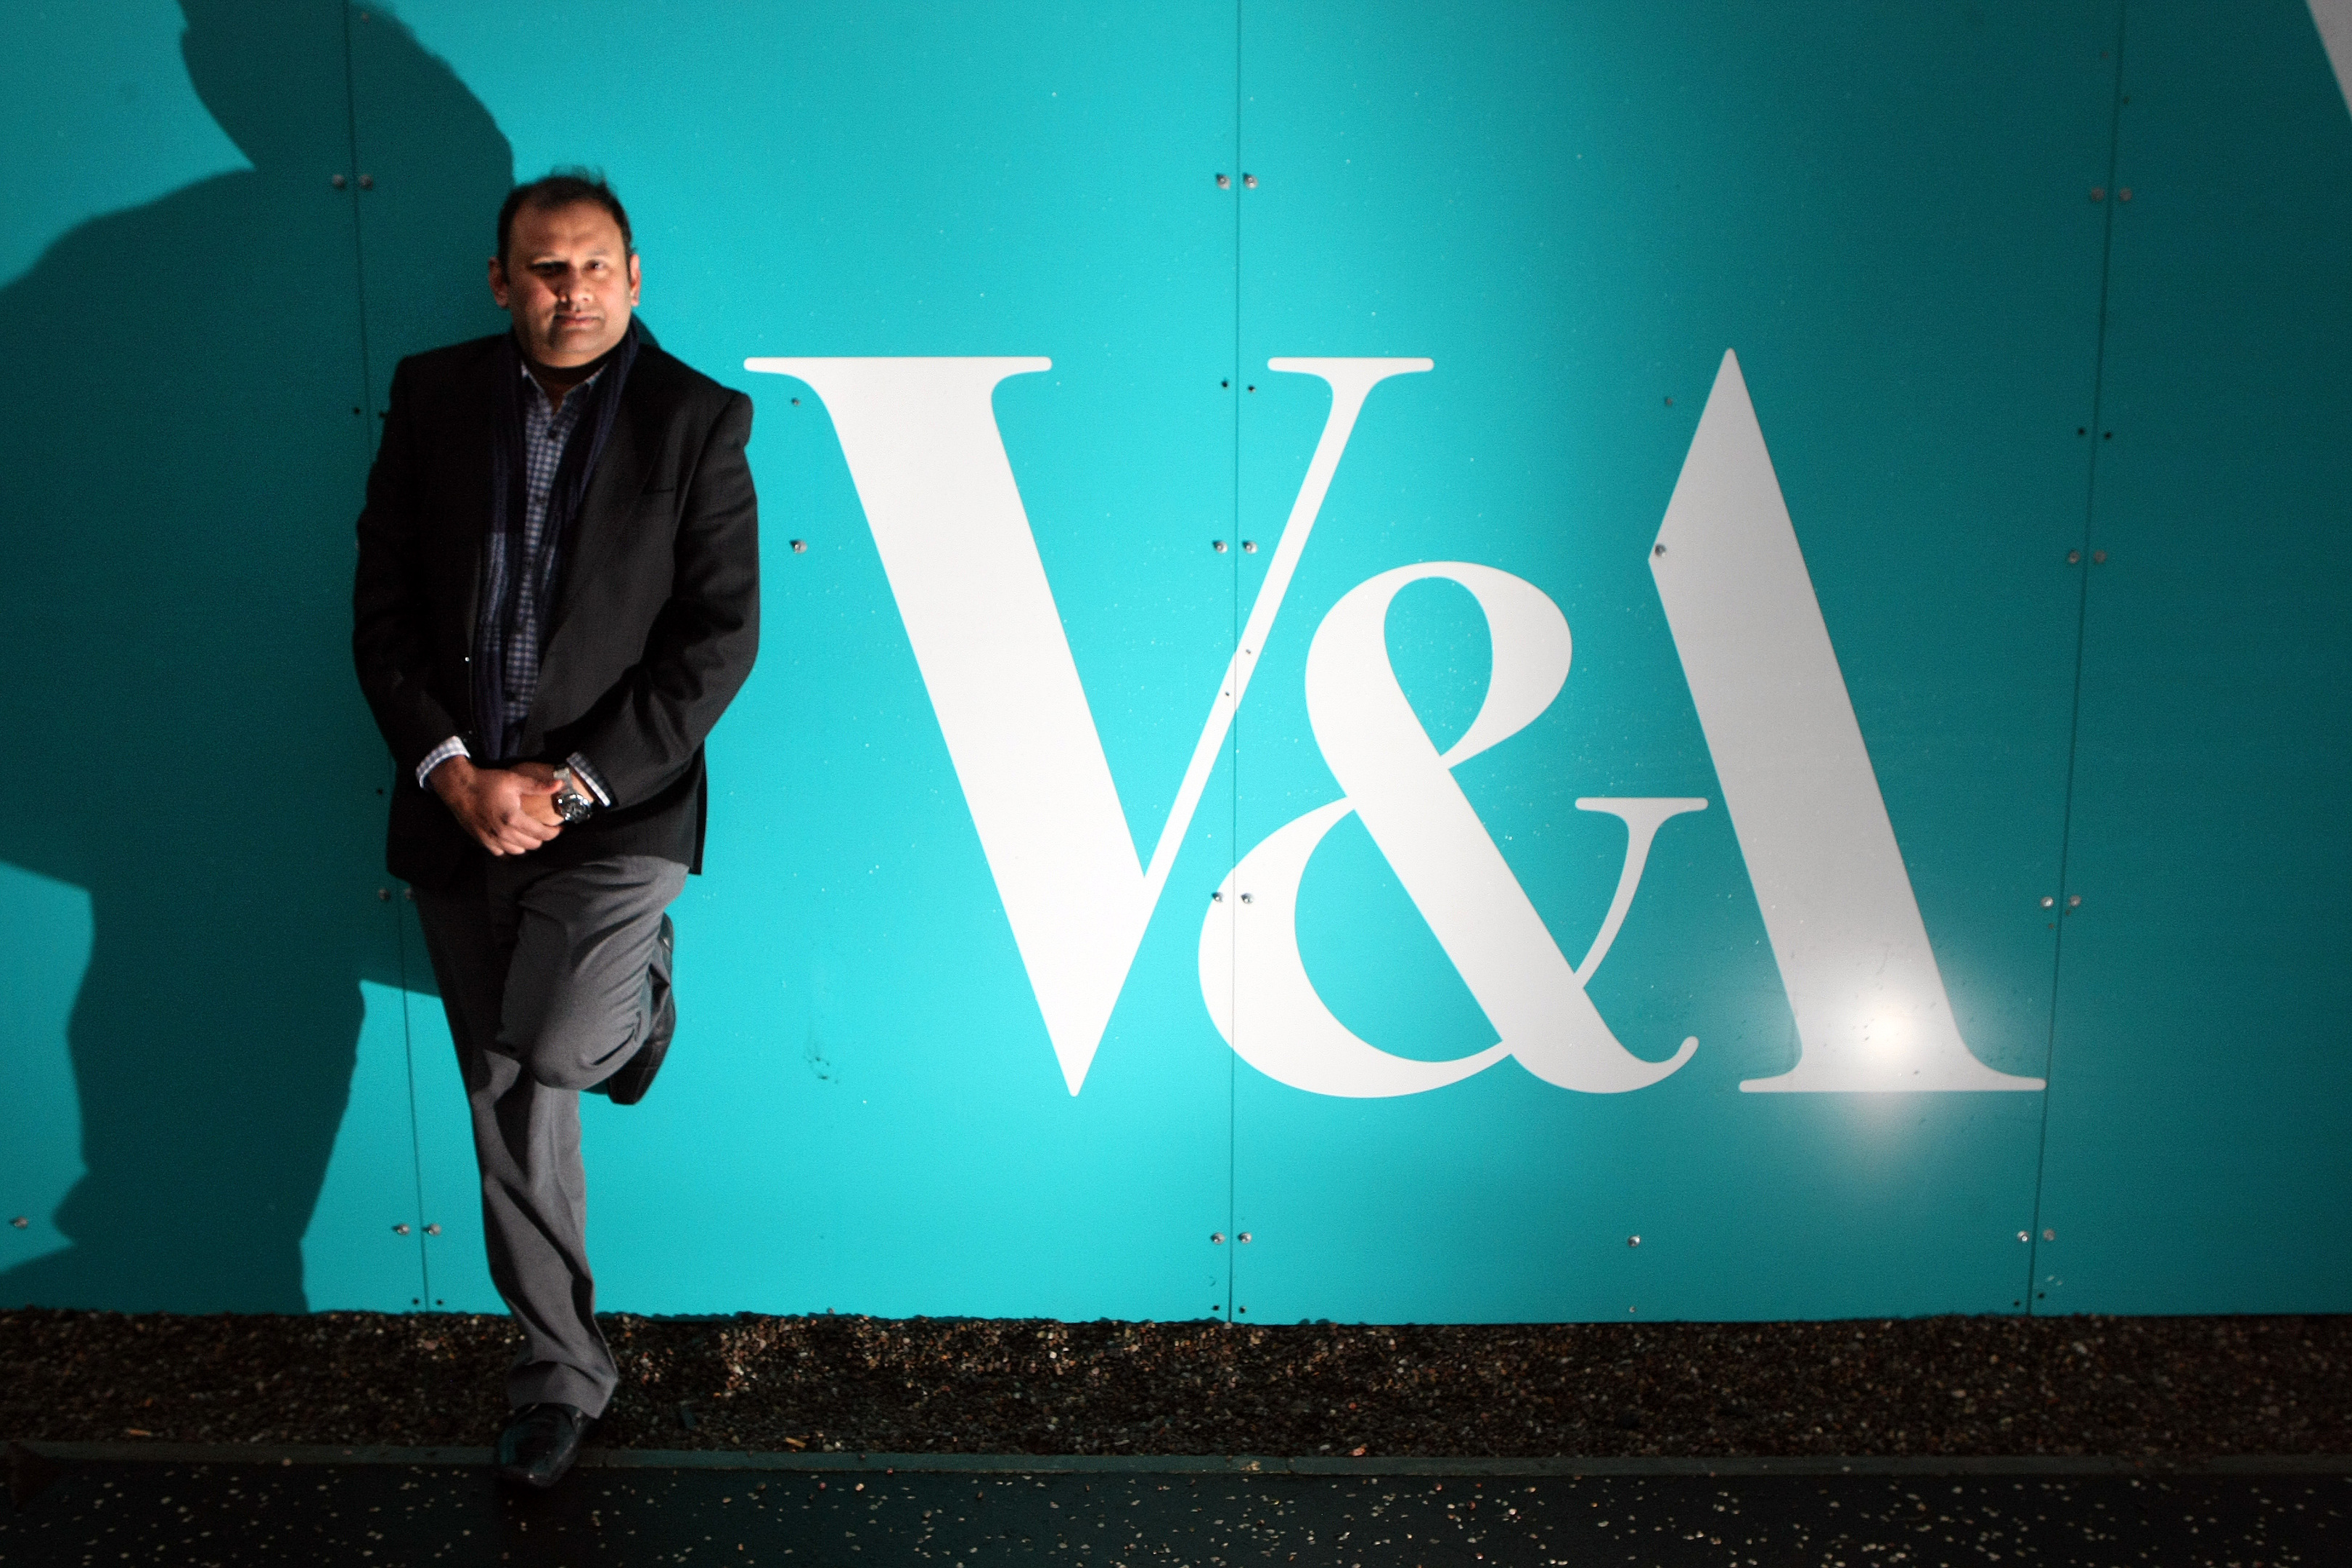 Dundee taxi driver Ahmed Mobin is amongst those trained as an 'ambassador' for Dundee ahead of the opening of the V&A in 2018